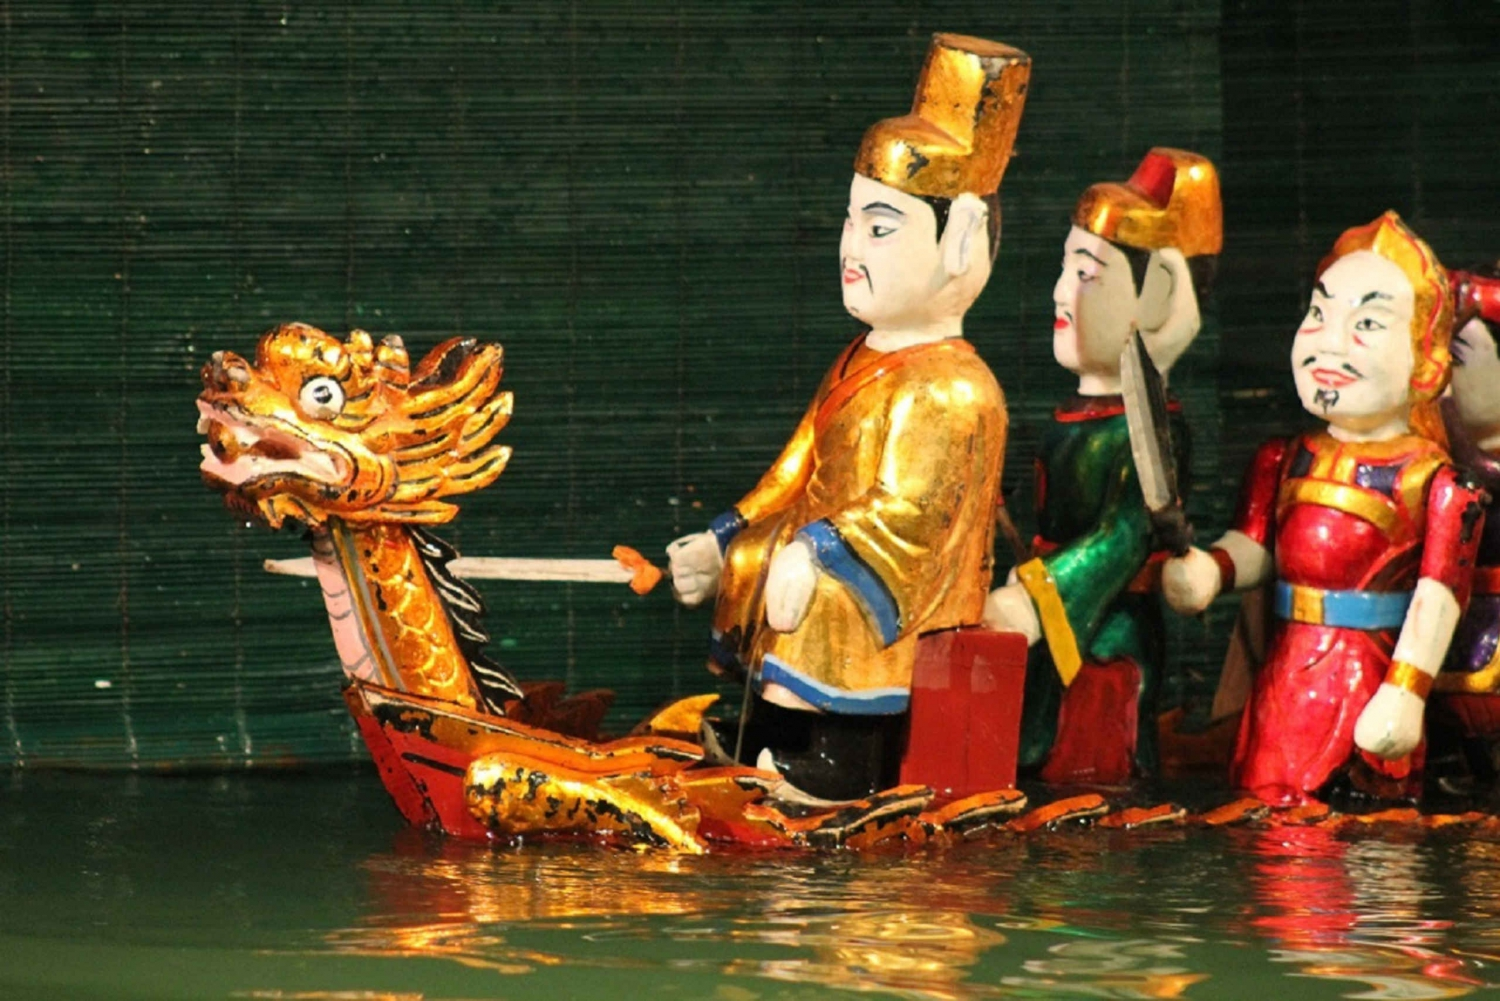 Water Puppet Theatre Skip-the-Line Entry Ticket